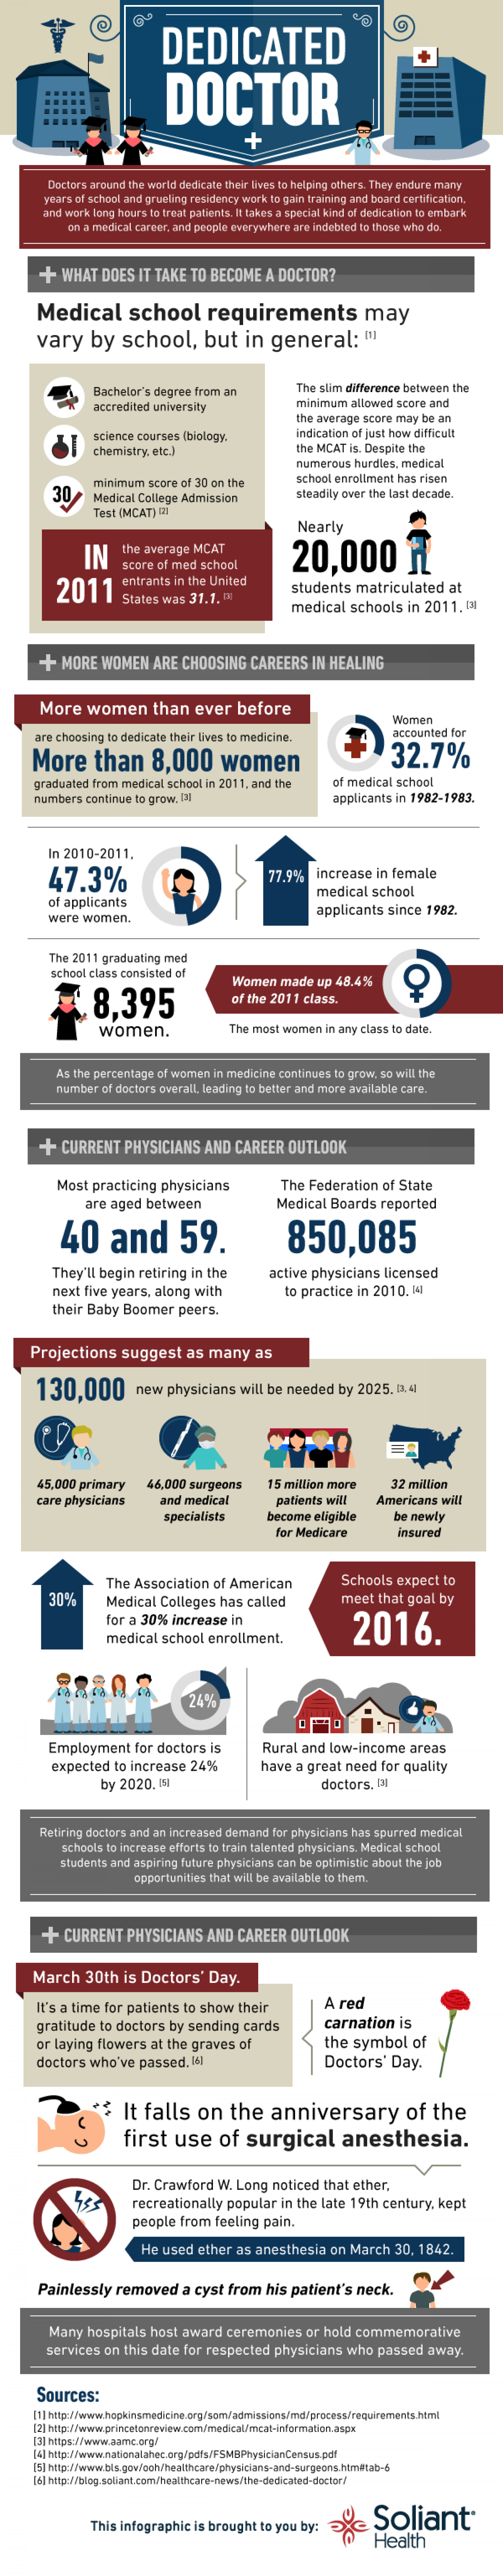 The Dedicated Doctor Infographic